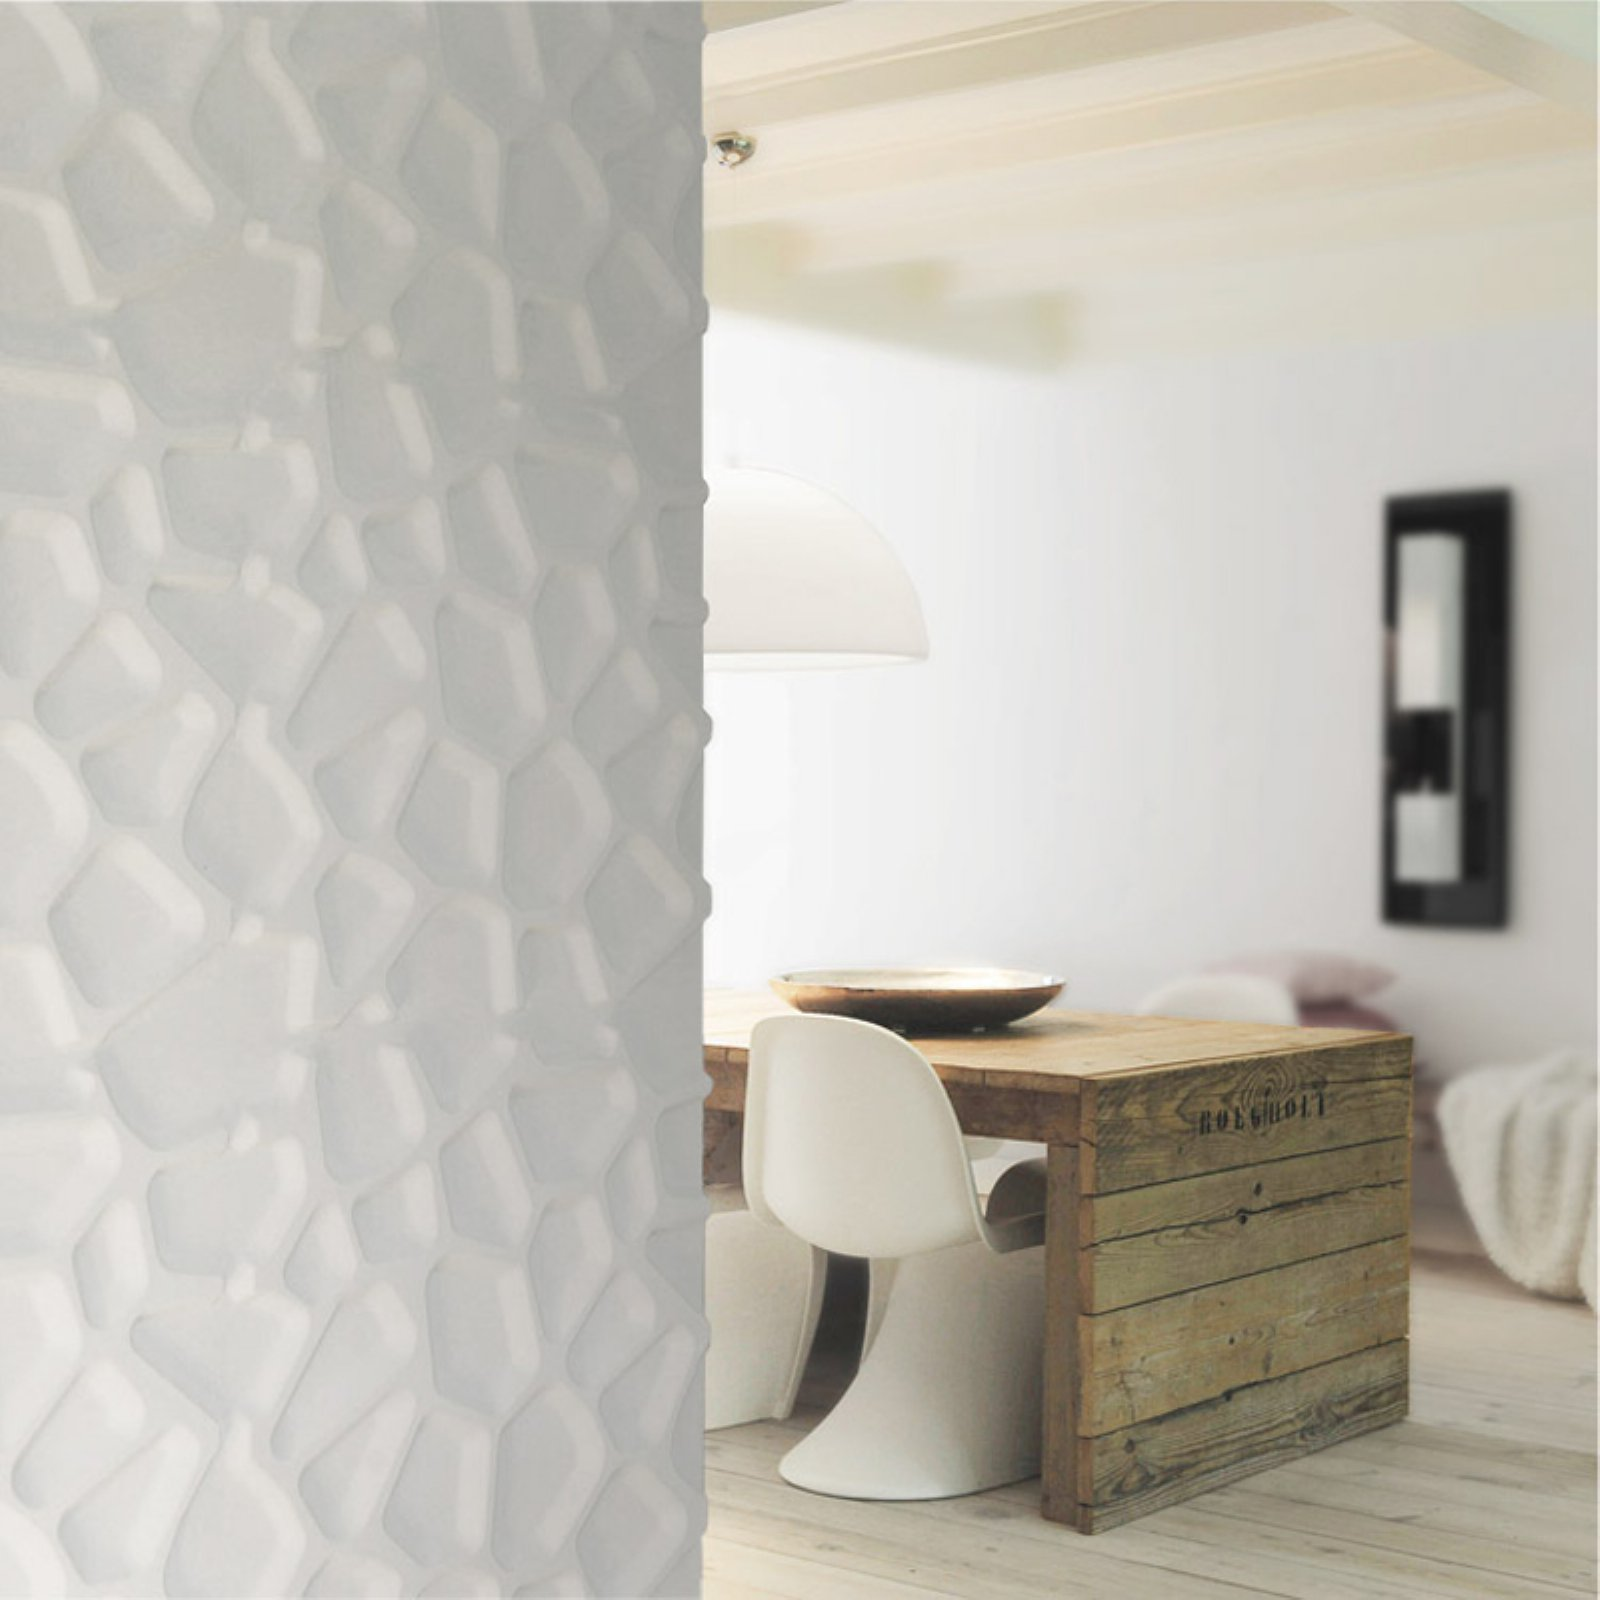 Hive Wall Flats - Set of 10